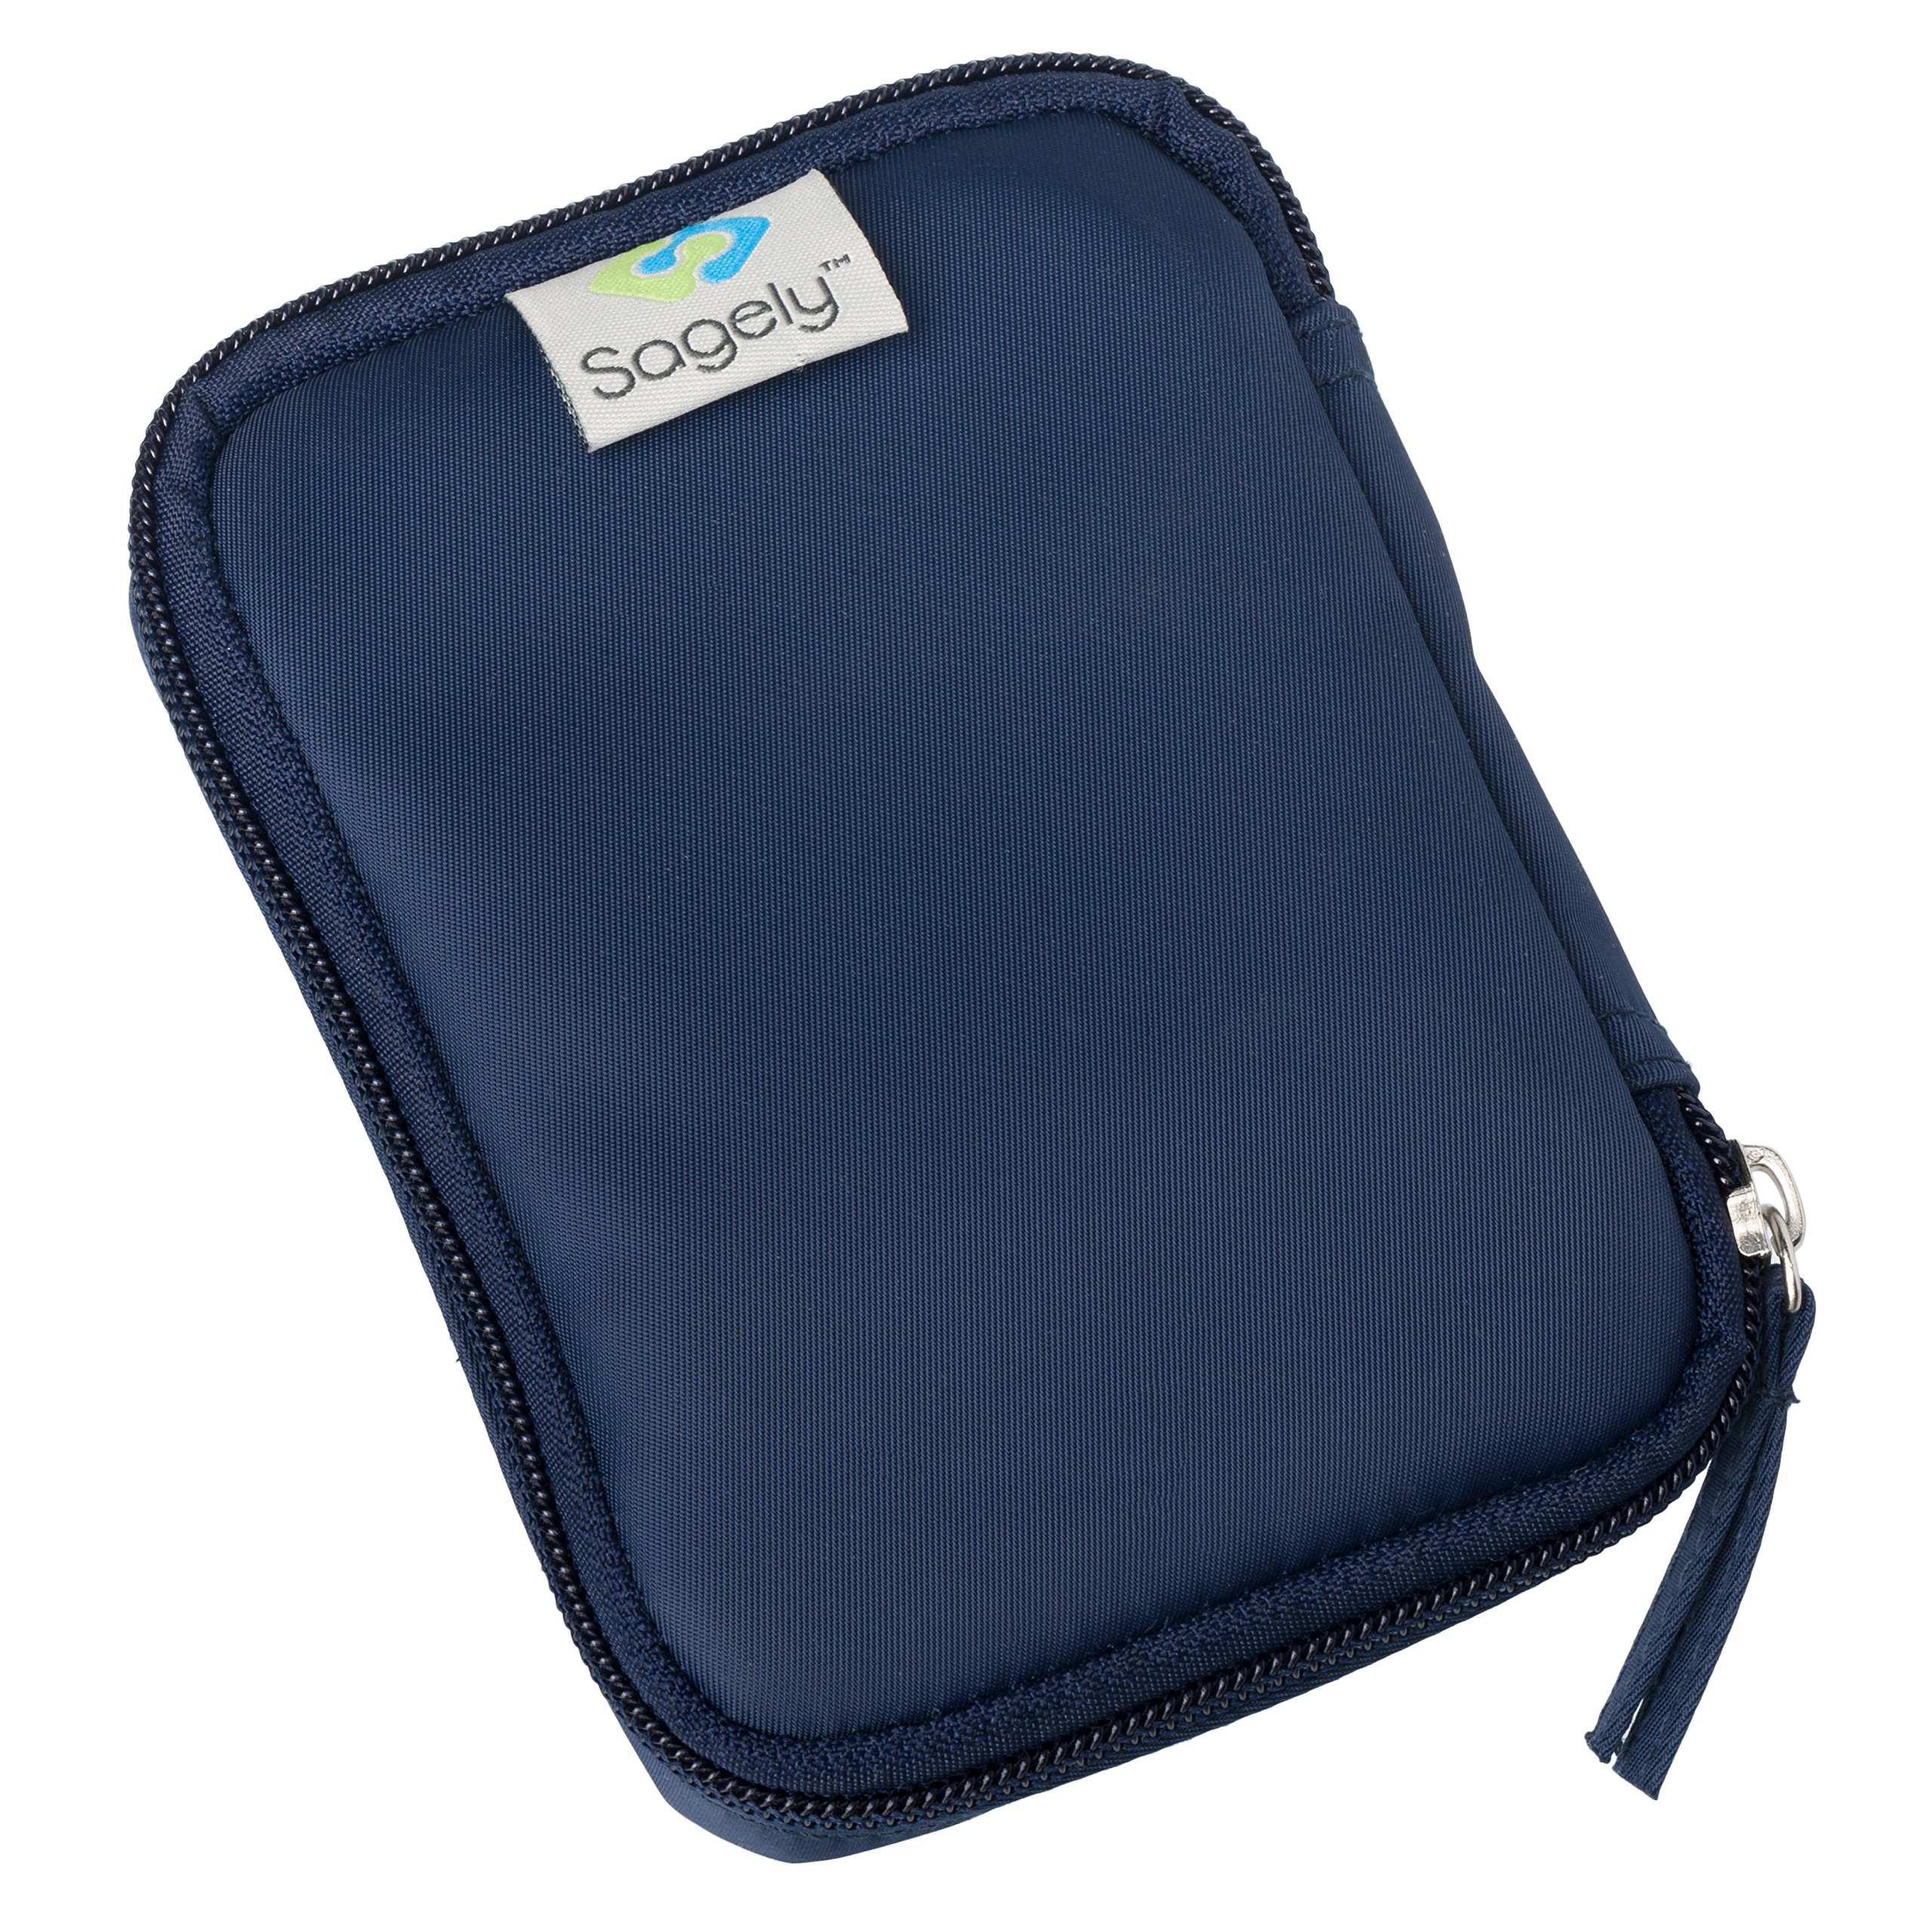 Sagely Weekend Travel Pouch for Smart Weekly Pill Organizer (Navy)